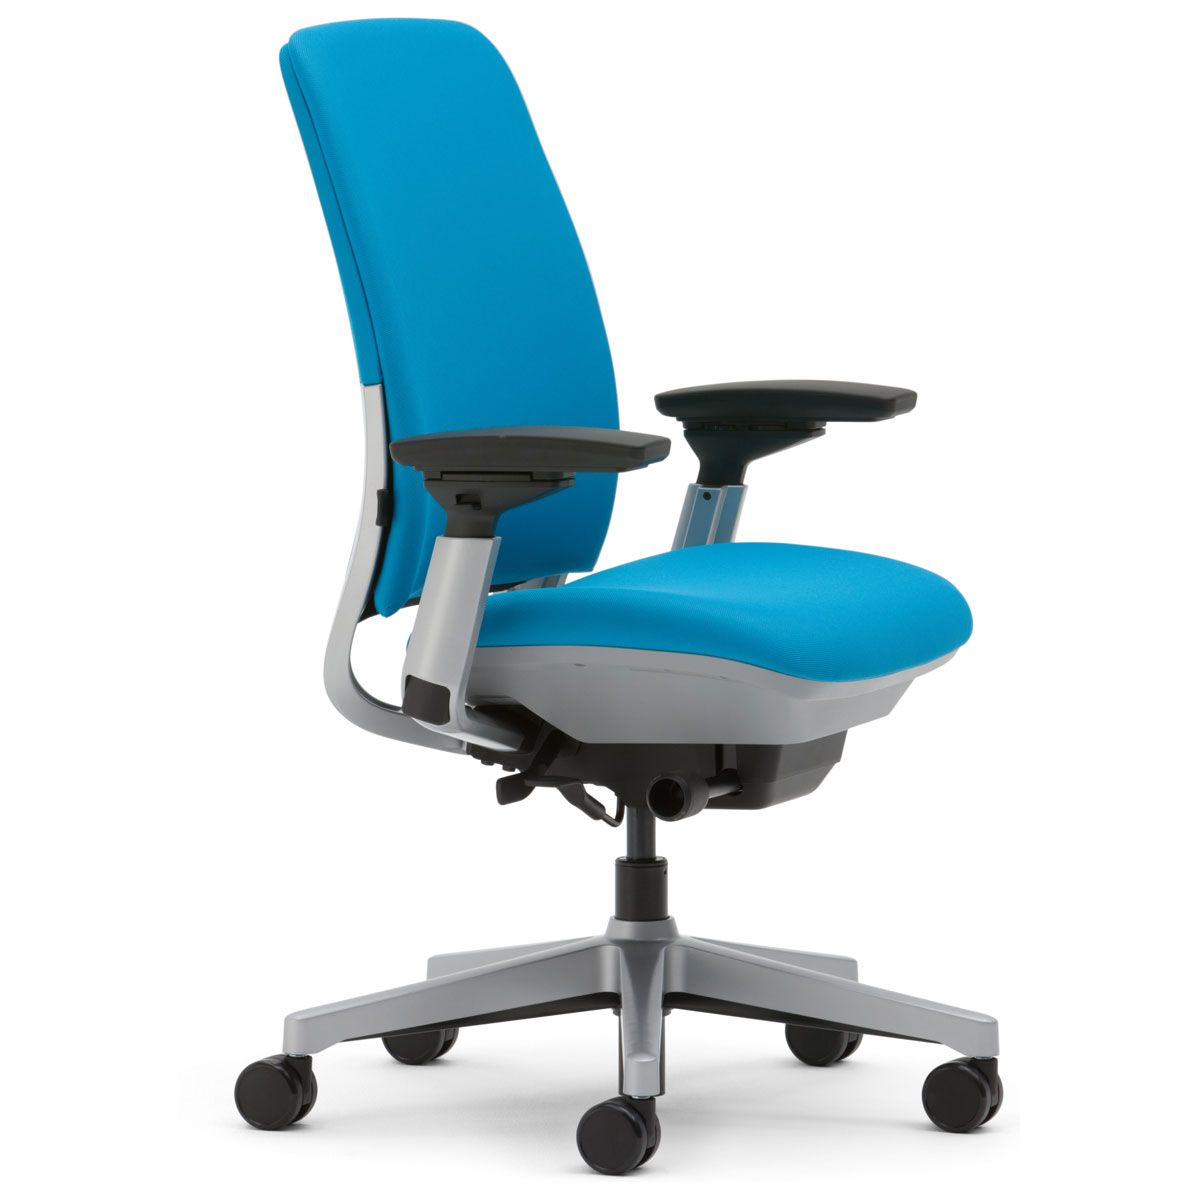 The Steelcase Amia Chair Provides The Same Comfort And Support Of Higher End Ergonomic Office Chairs At Nearly Ha Beach Chair Umbrella Chair Used Office Chairs